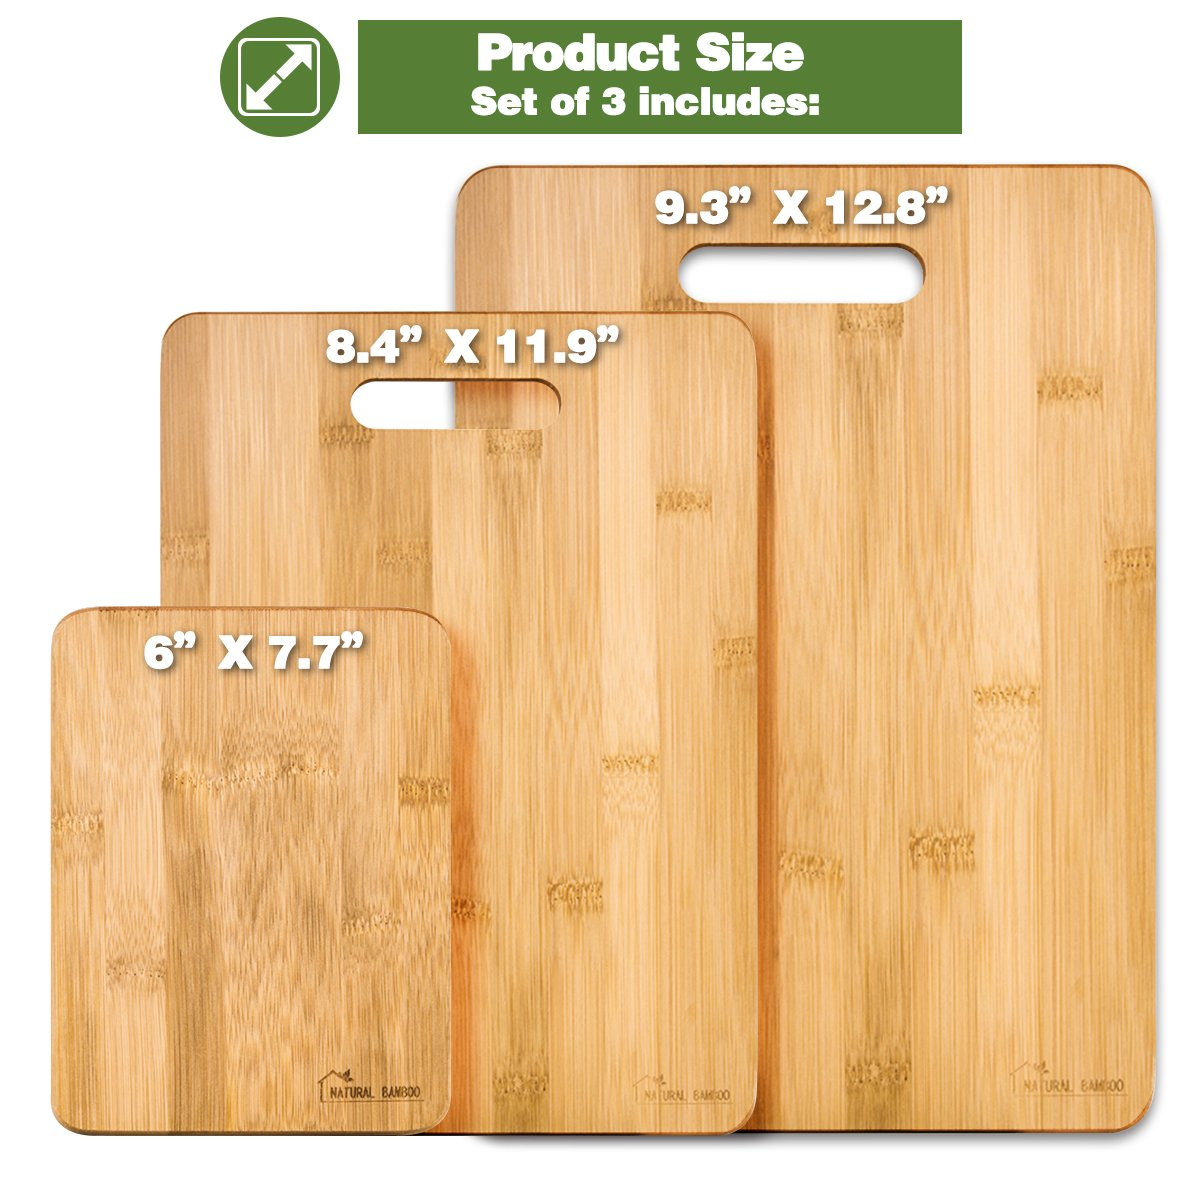 Bamboo Cutting Board [Set of 3], Natural Bamboo 100% Premium Organic; Cutting & Serving Board Set; Used for Cut Food Prep, Meat, Vegetables, Bread, Crackers & Cheese ([Set of 3]) by Natural Bamboo (Image #7)